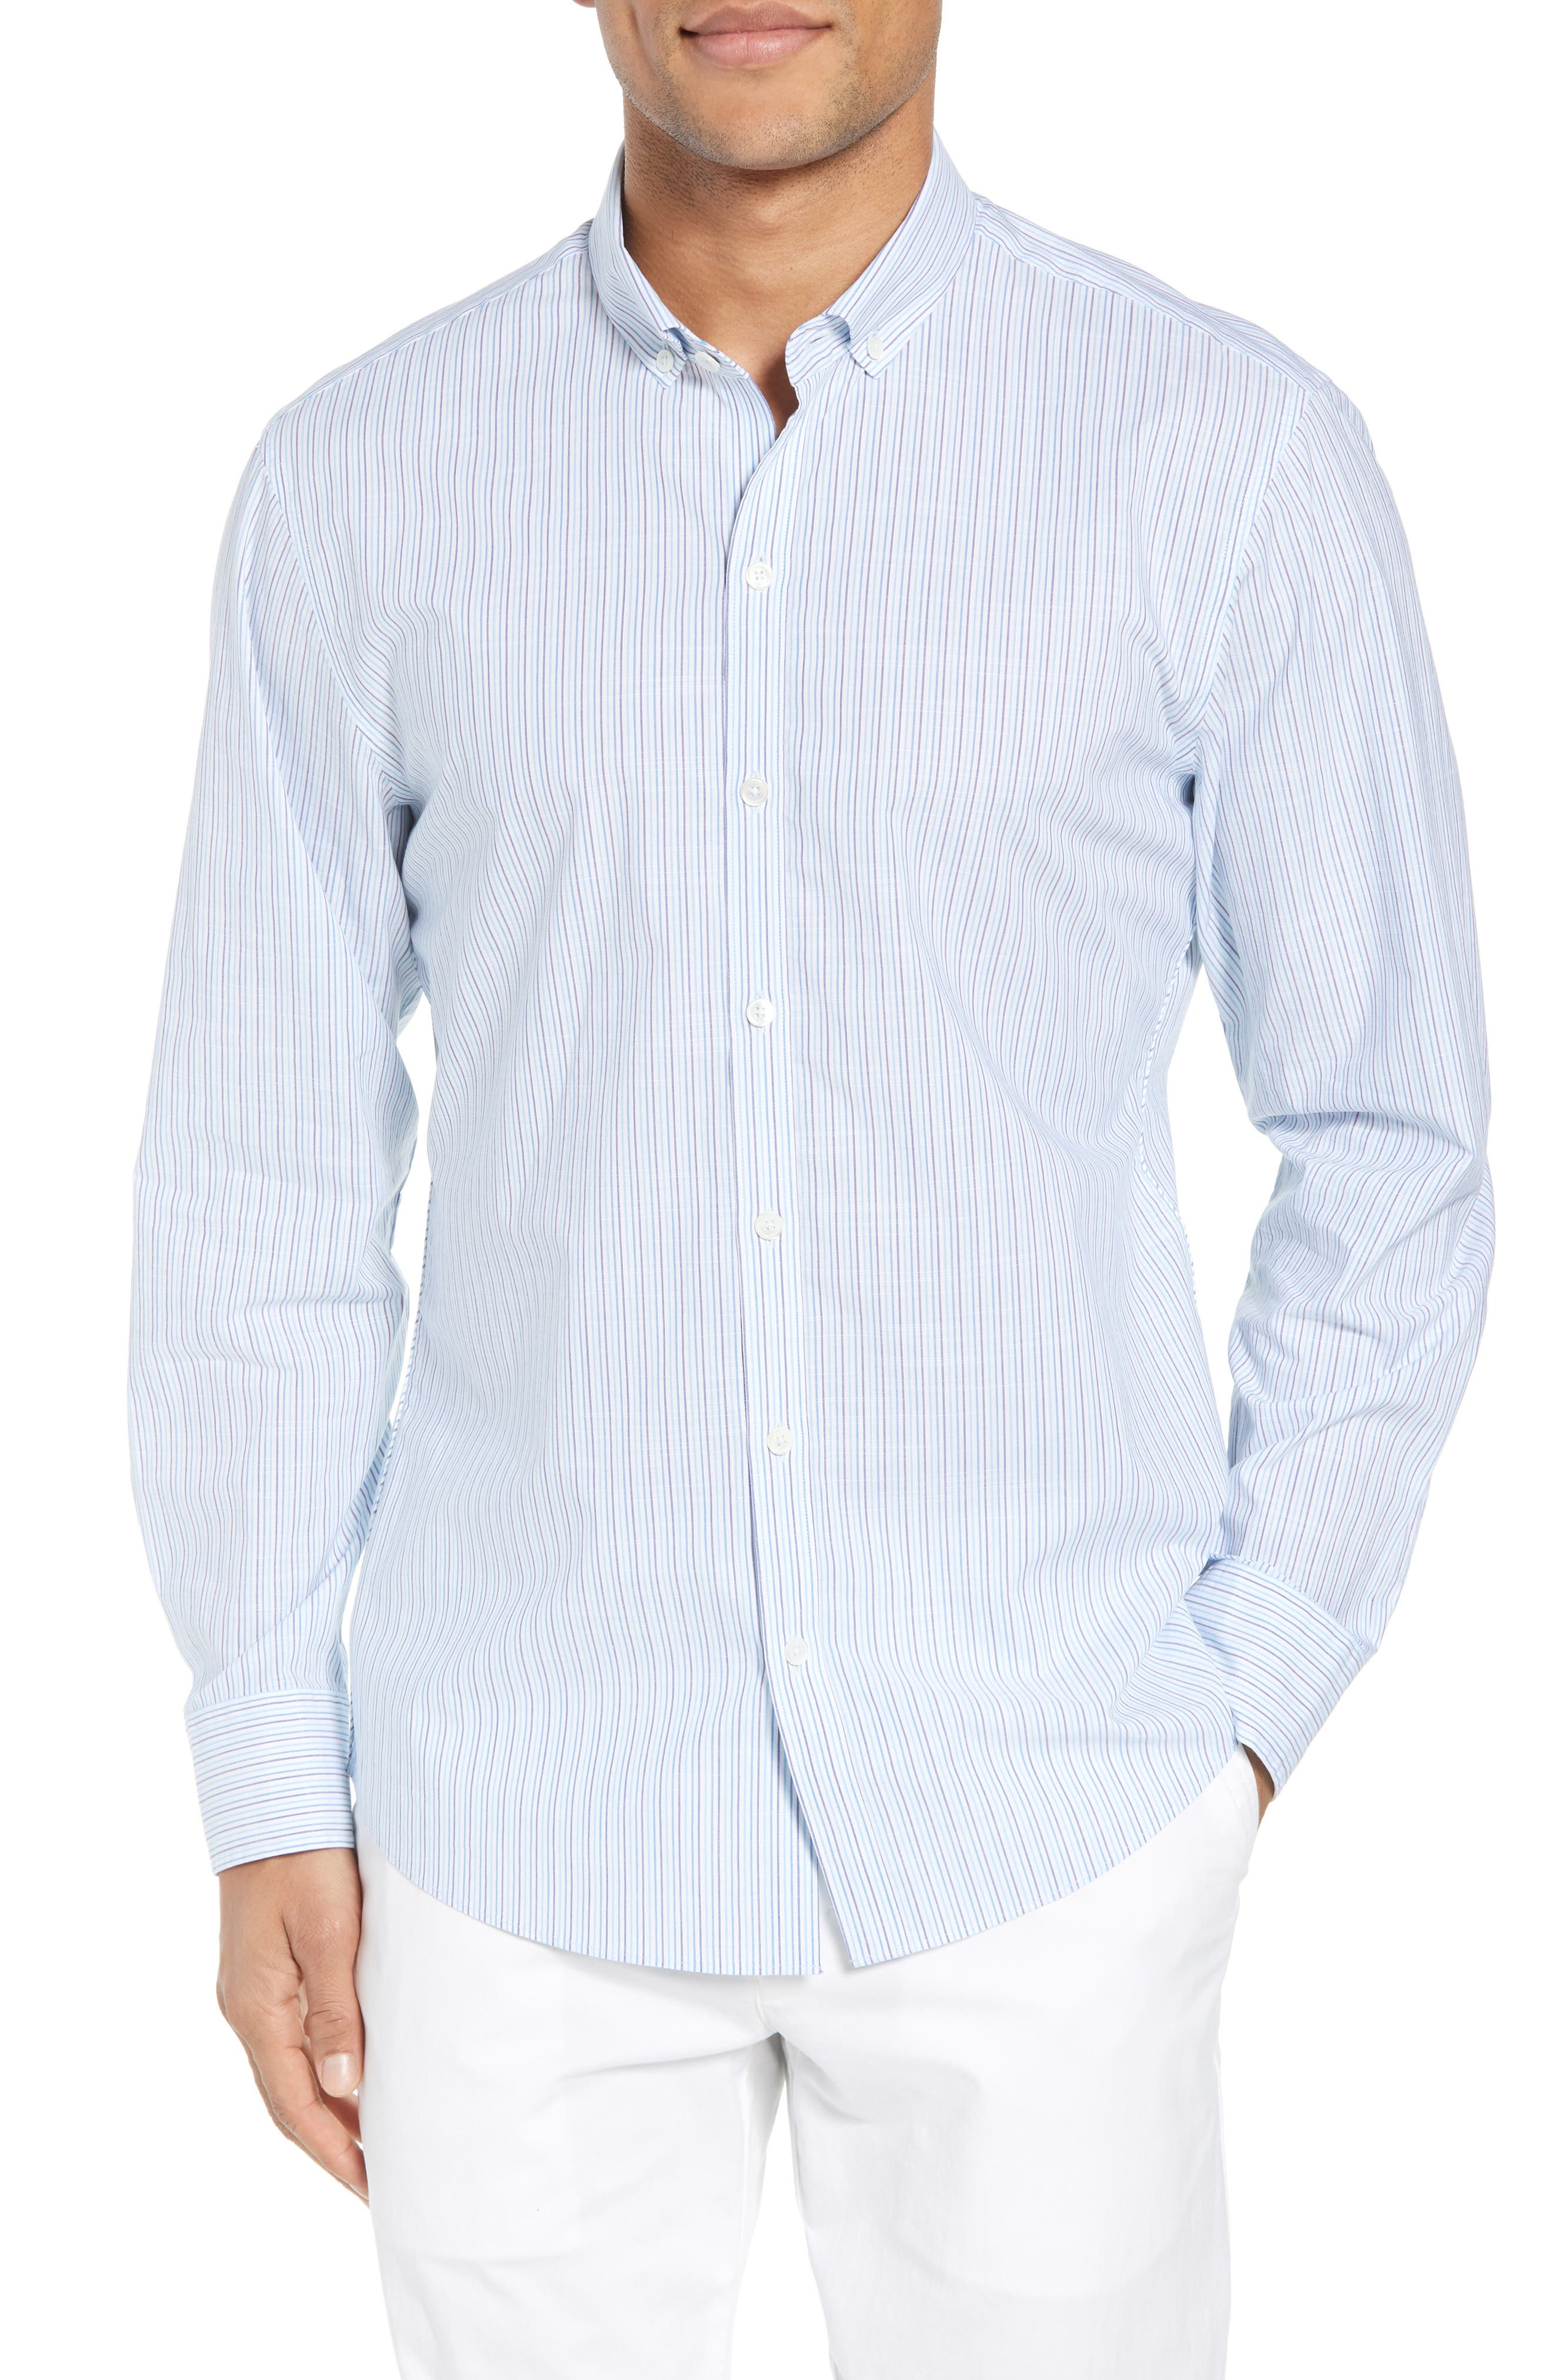 Skeeter Stripe Sport Shirt,                         Main,                         color, Aqua